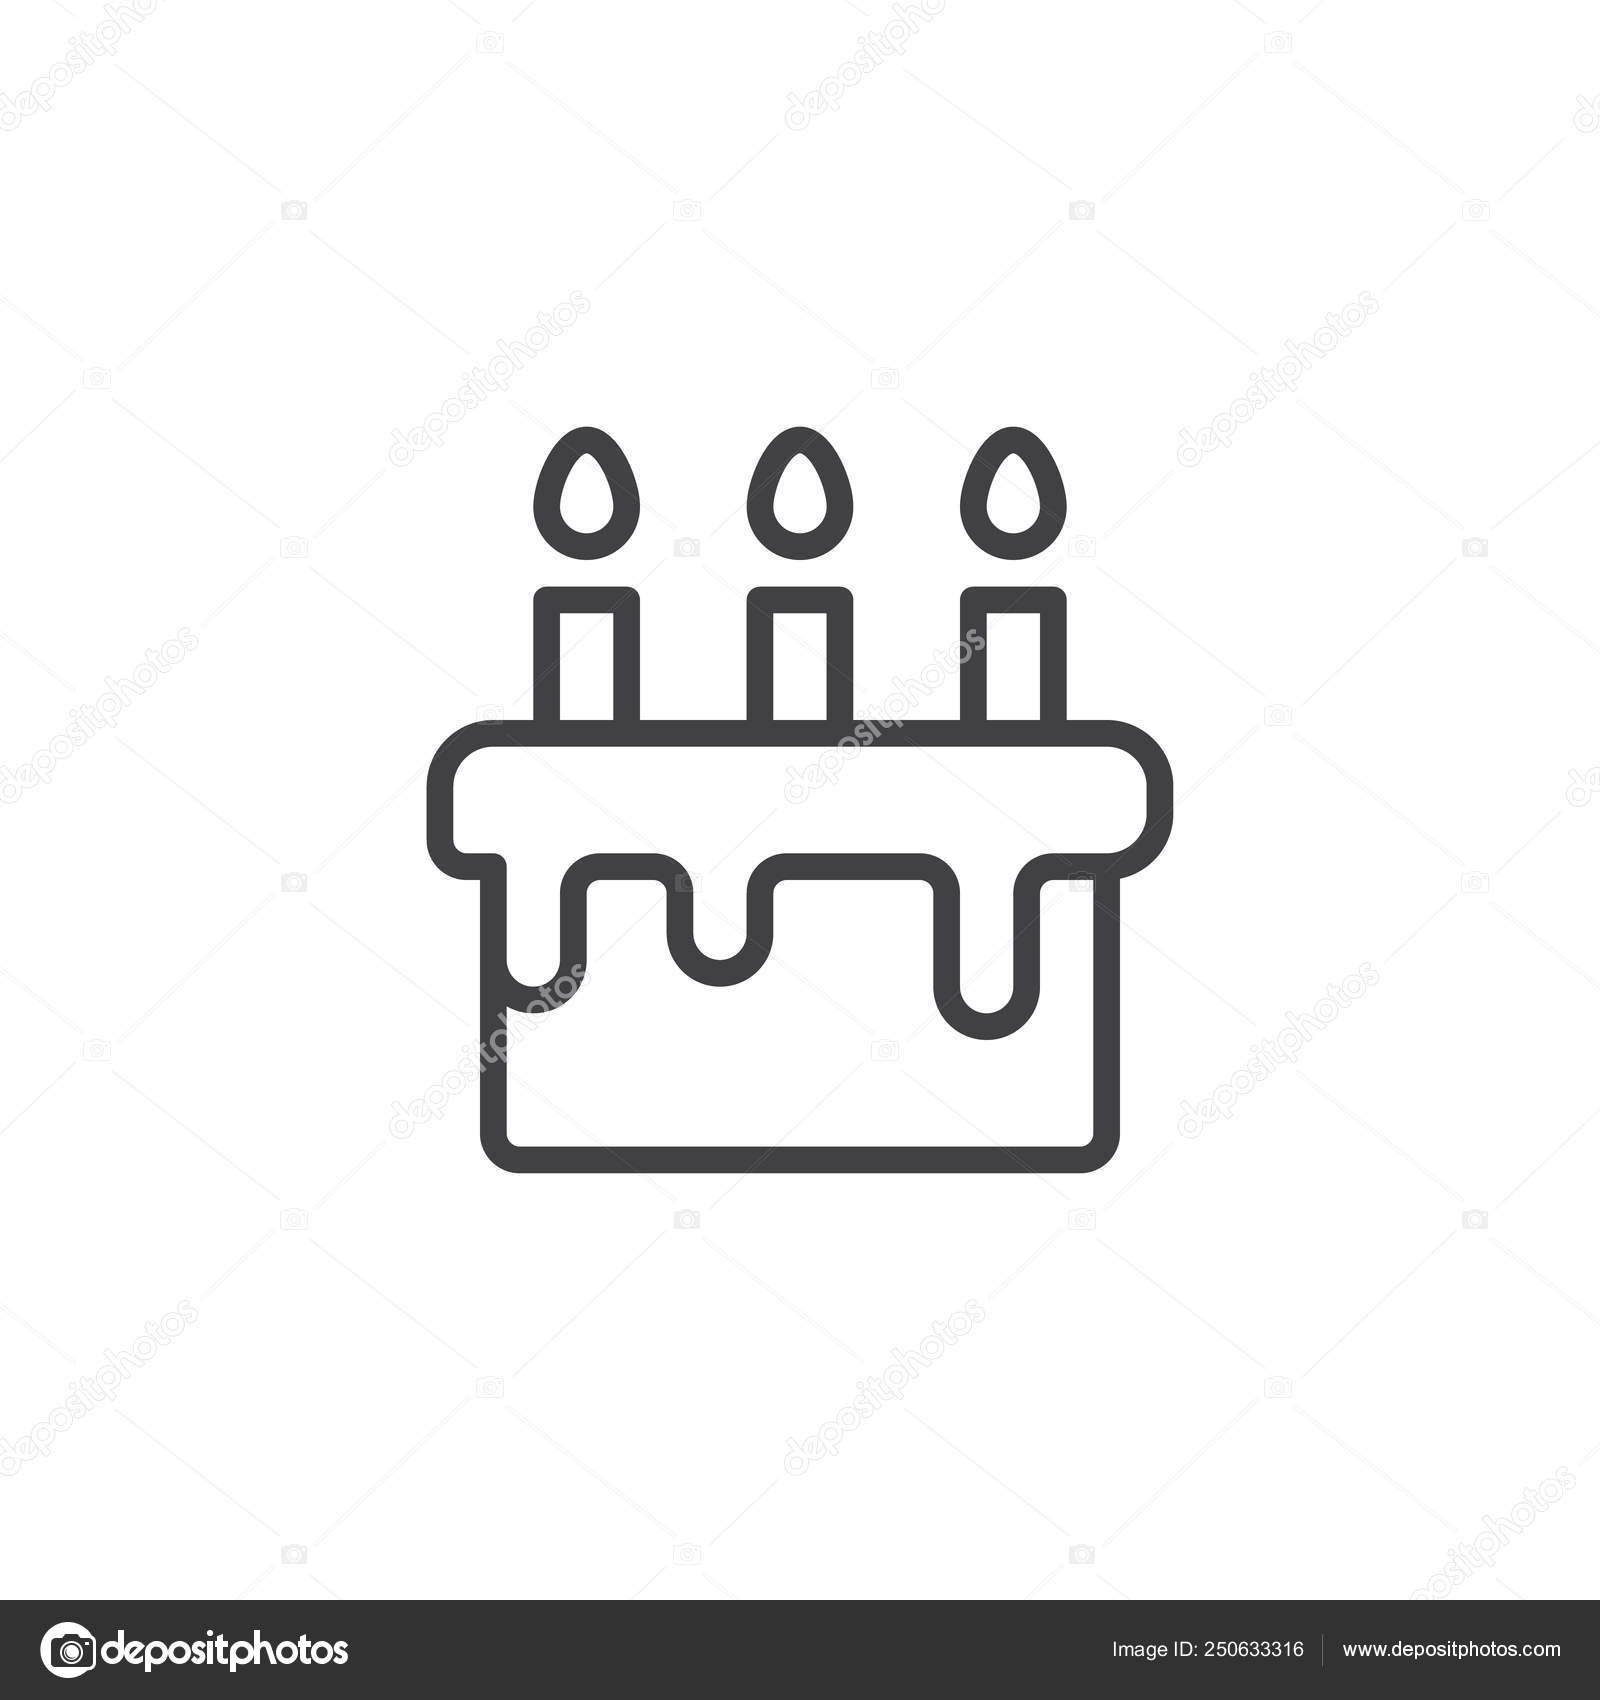 Sensational Birthday Cake Outline Icon Stock Vector C Avicons 250633316 Birthday Cards Printable Trancafe Filternl